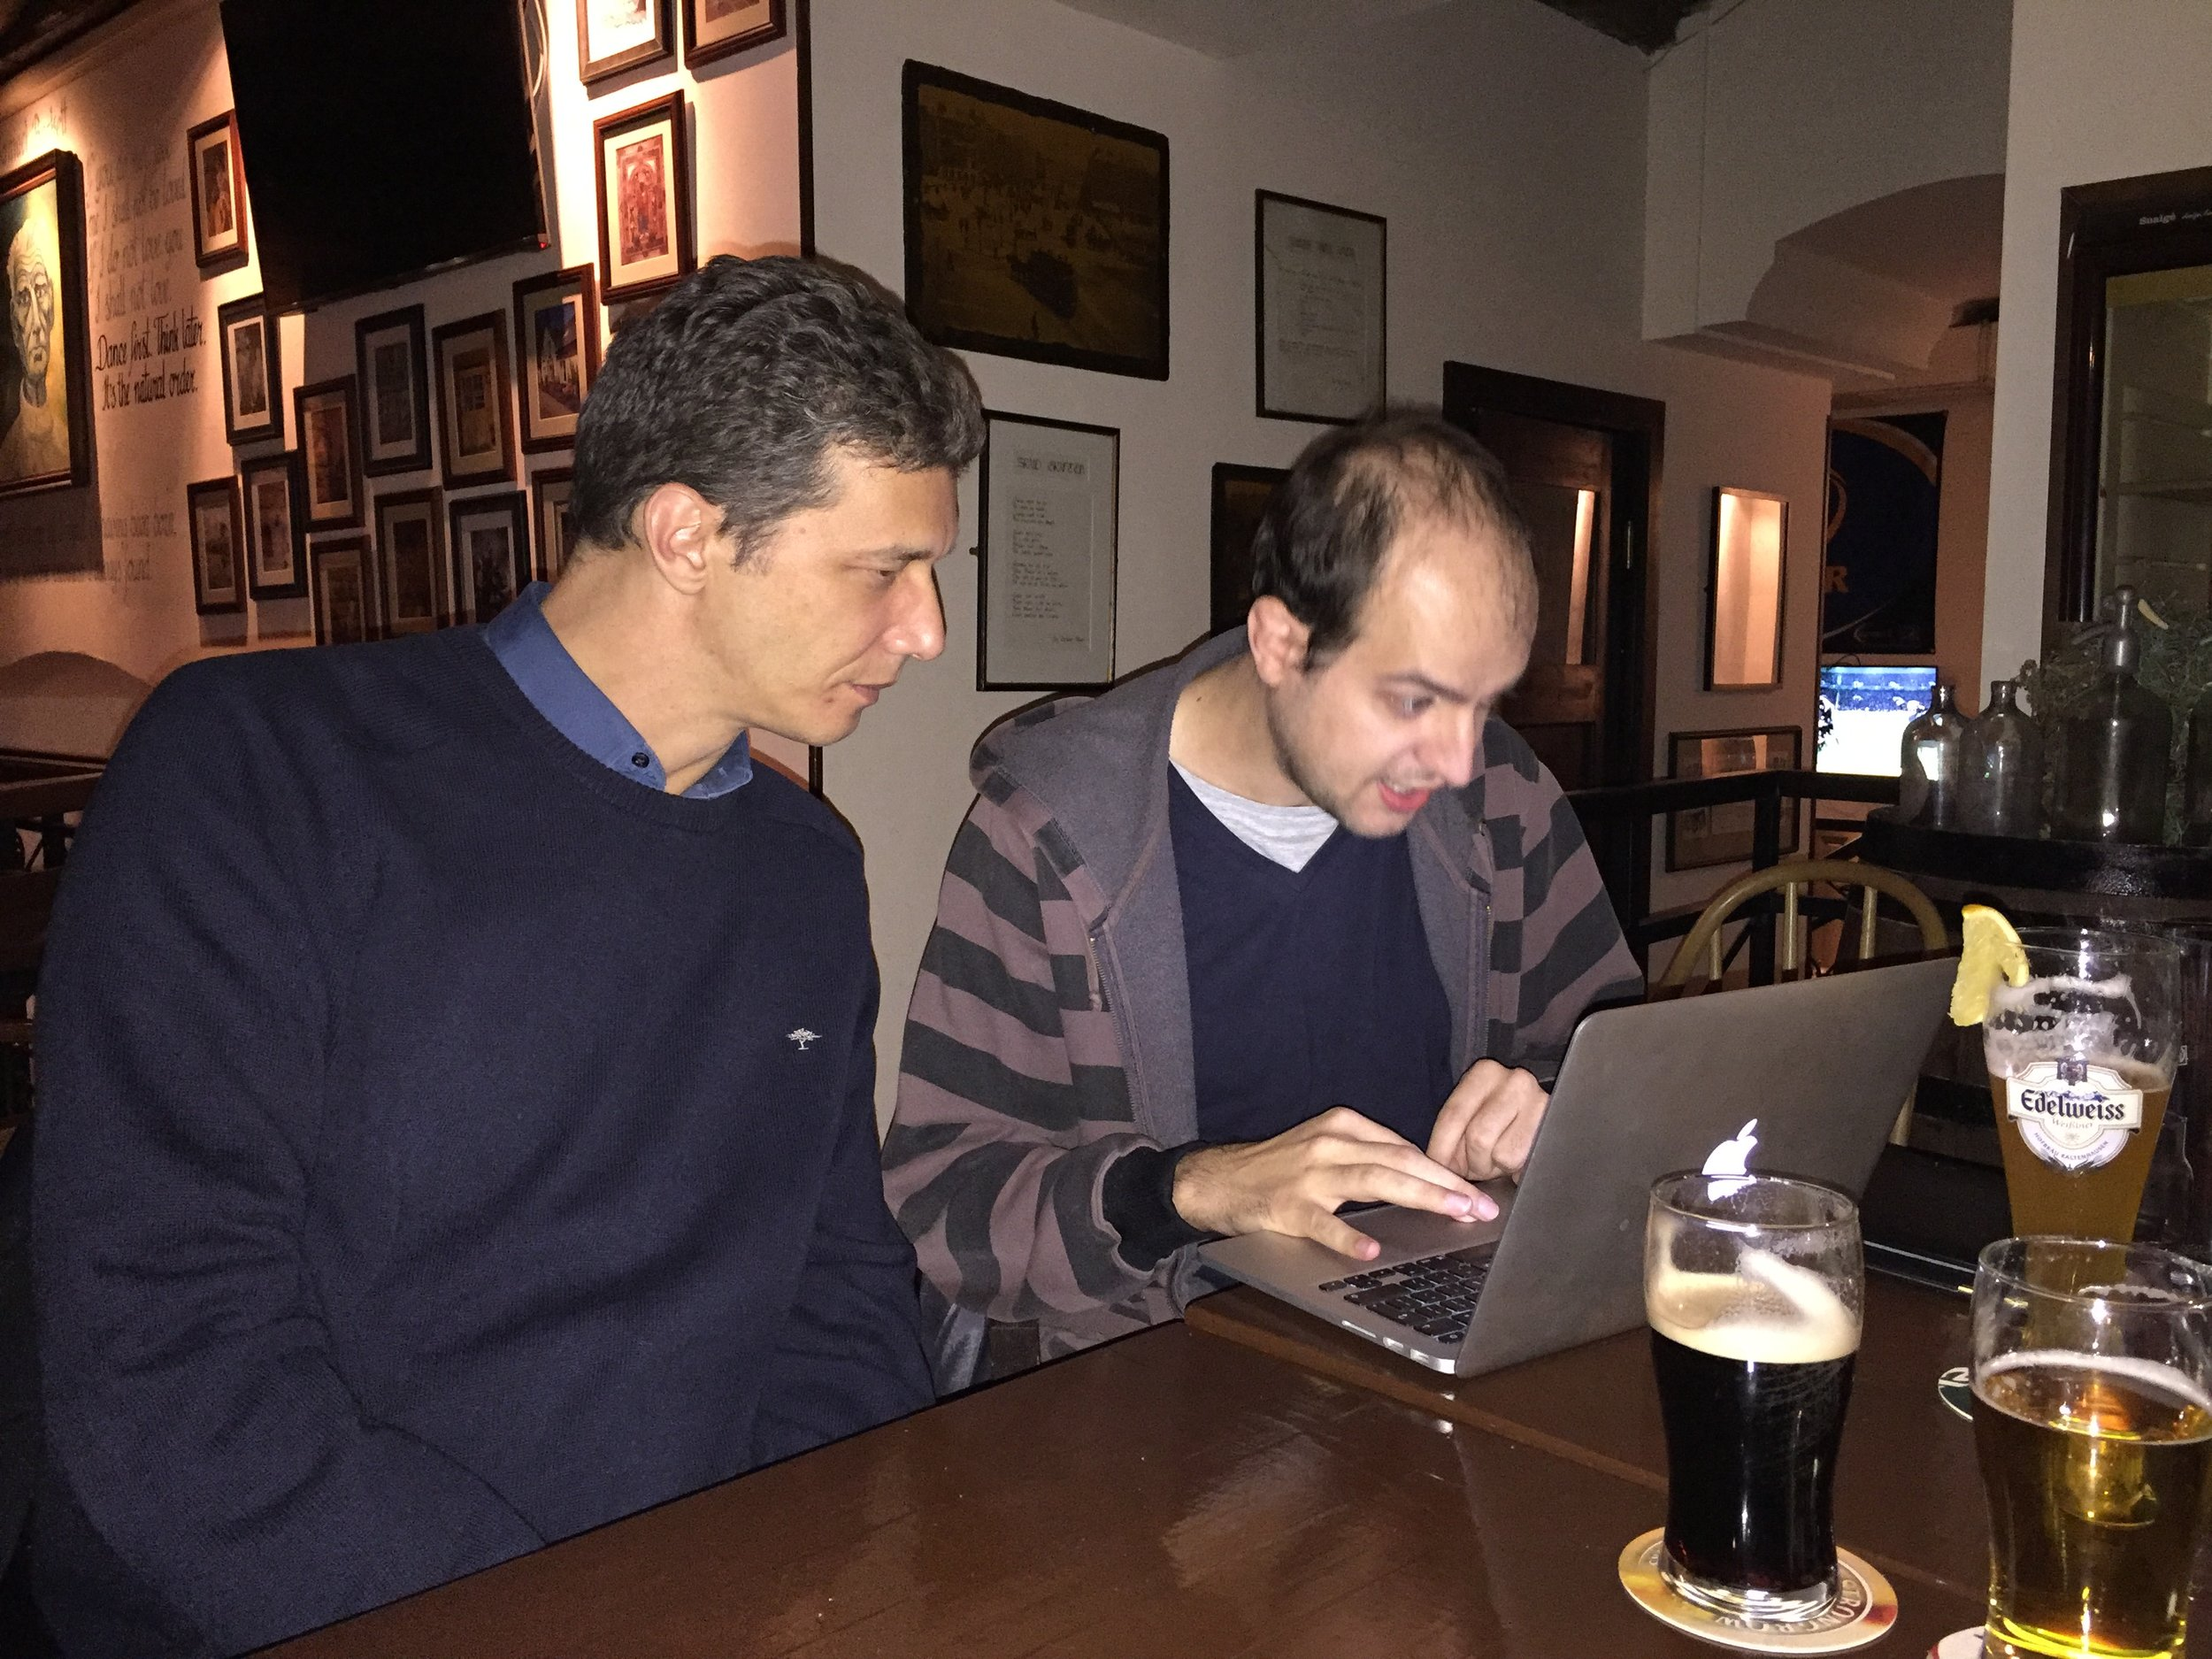 The time Steve built the web version, in the pub